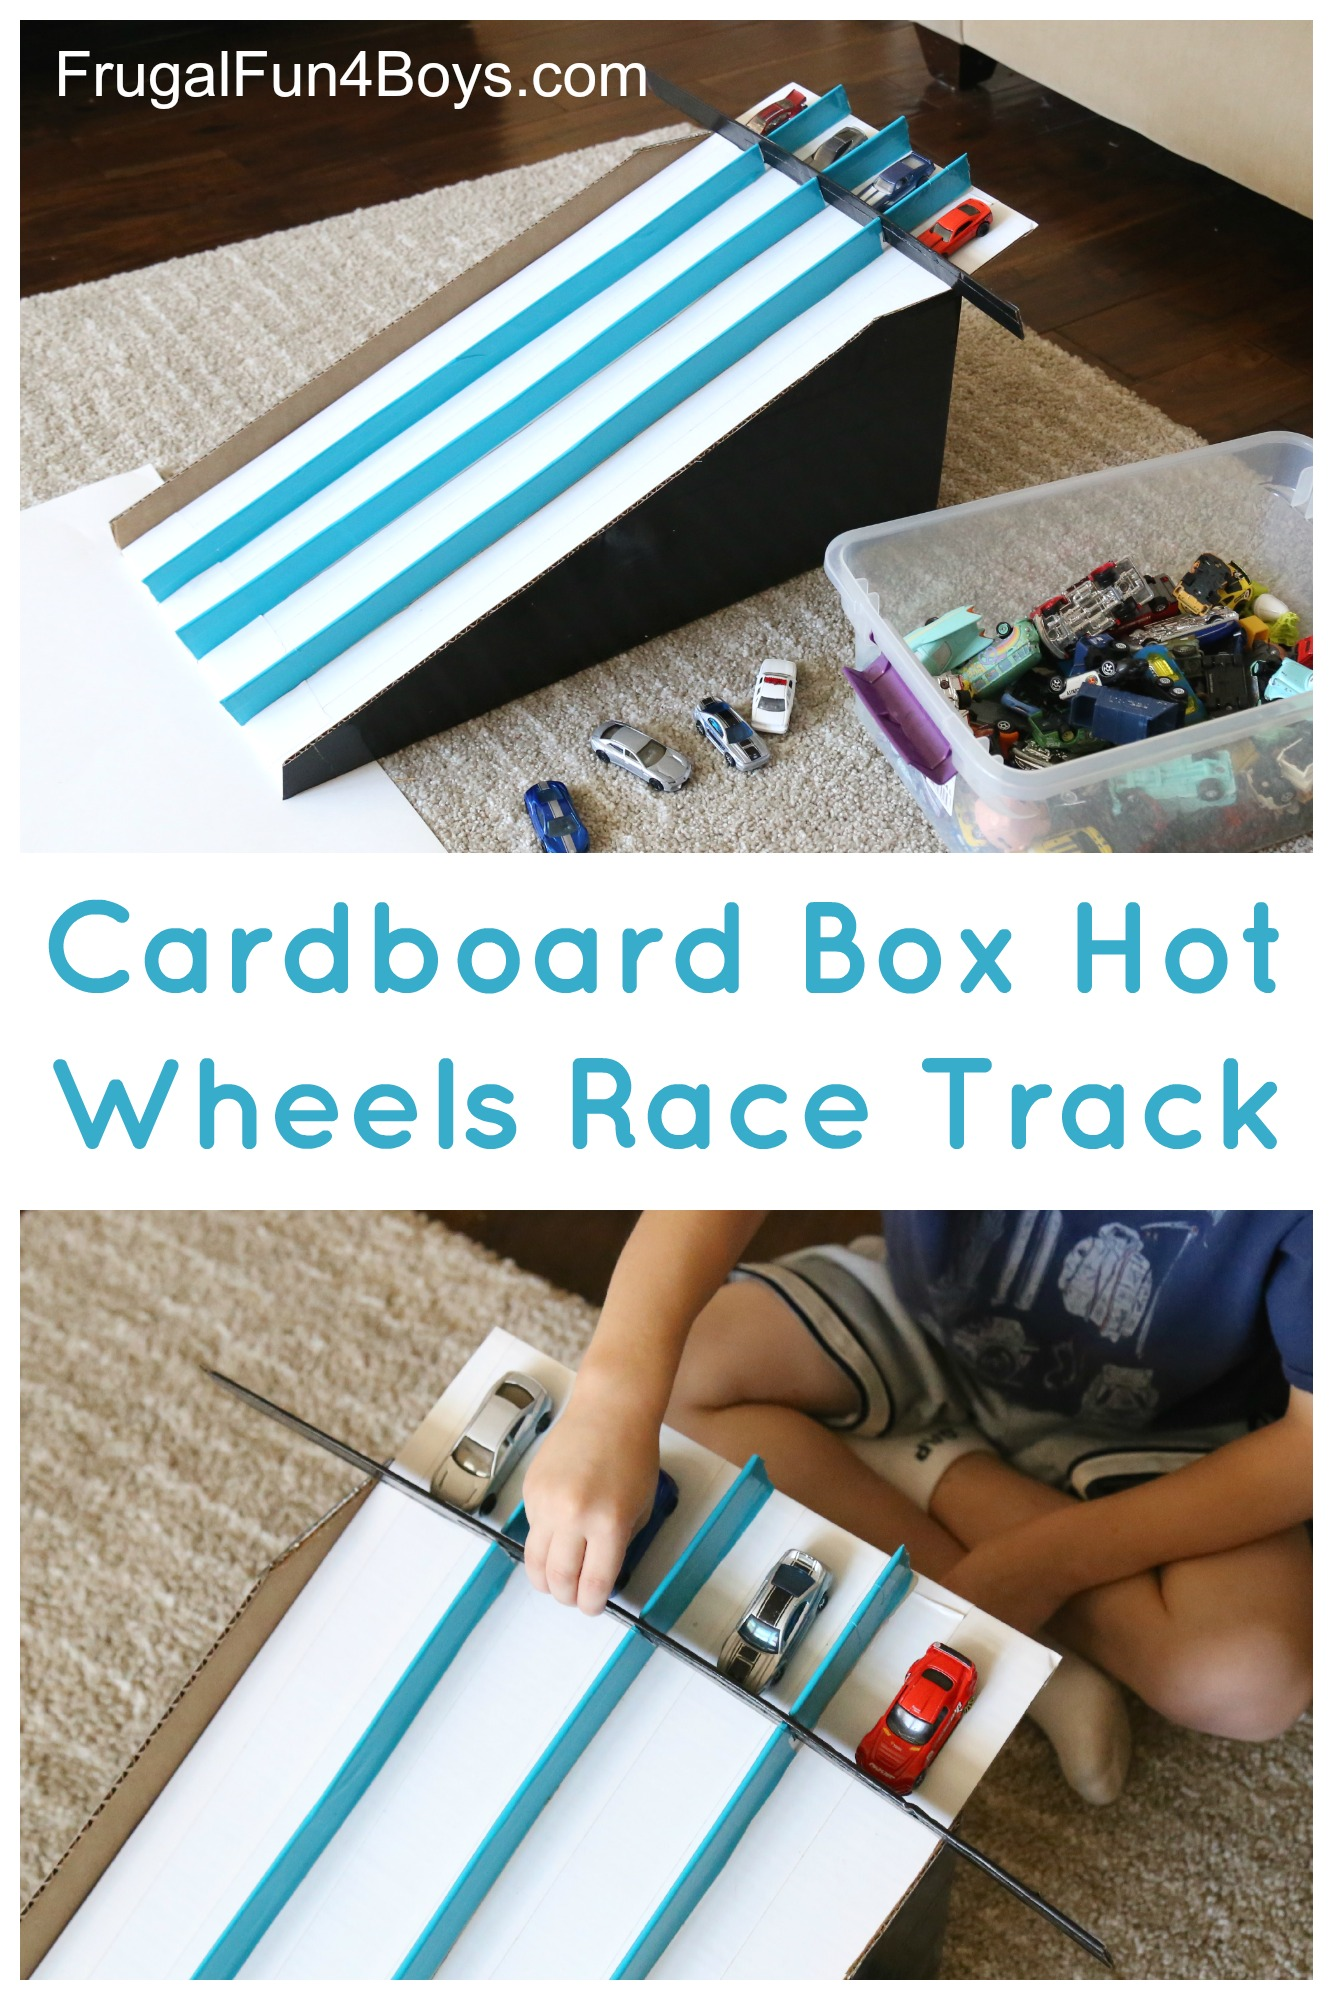 How To Make A Cardboard Box Race Track For Hot Wheels Cars Frugal